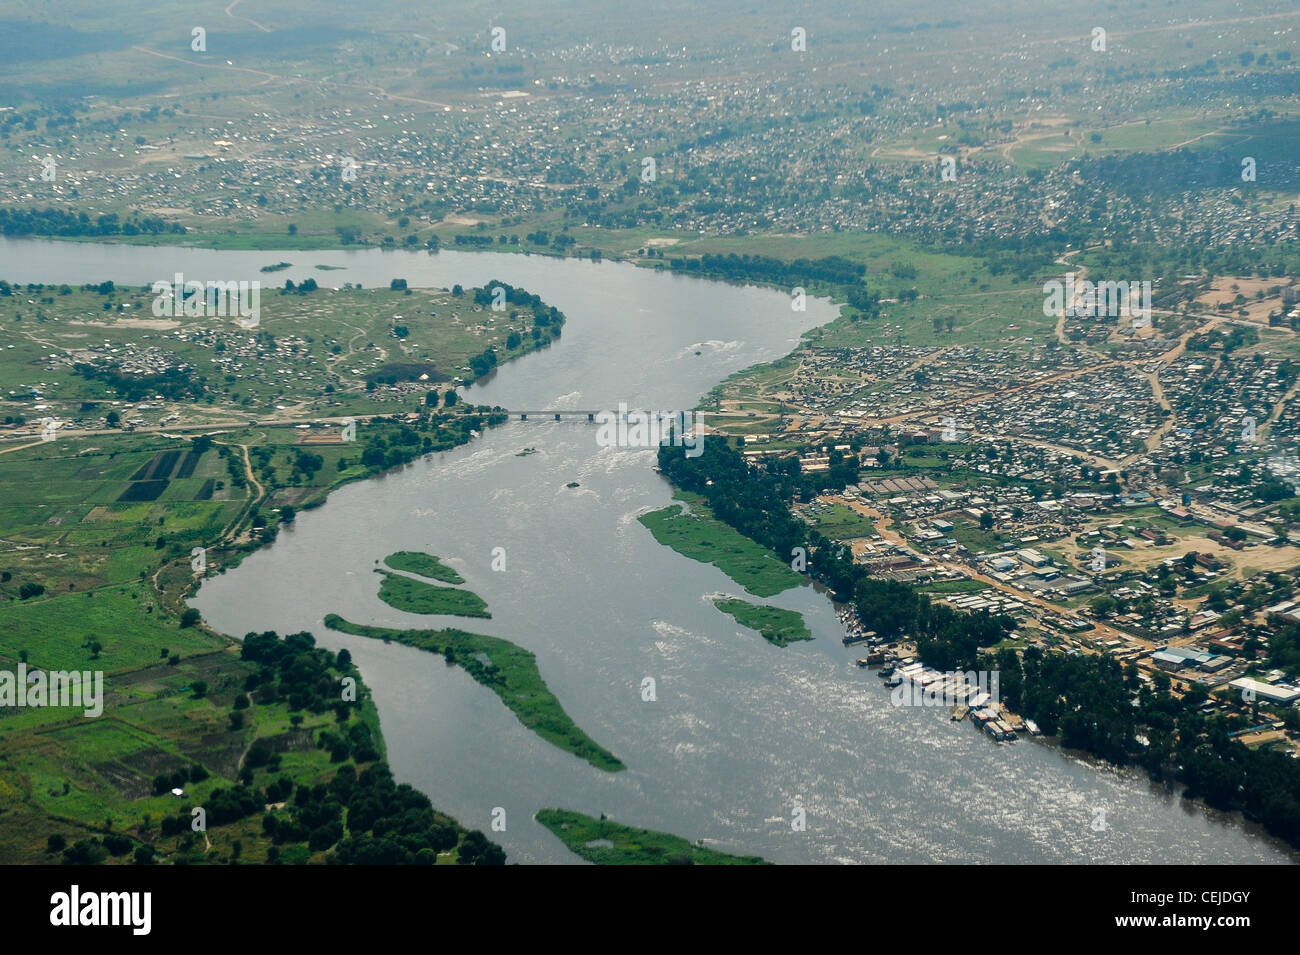 Africa SOUTH SUDAN aerial view of capital